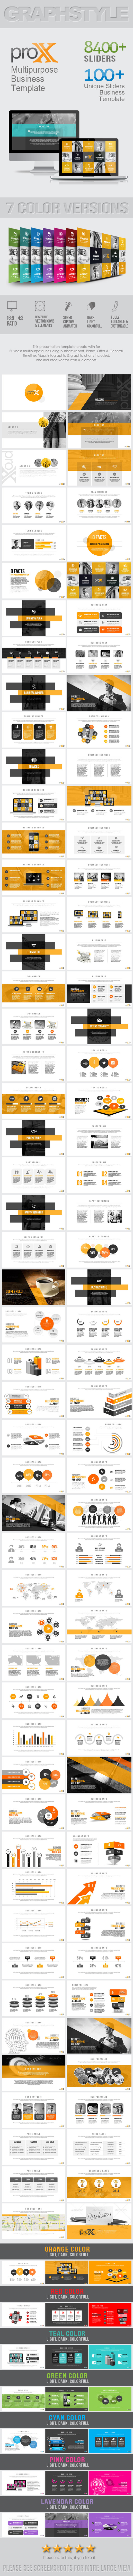 GraphicRiver ProX Multipurpose Business Template 8899554